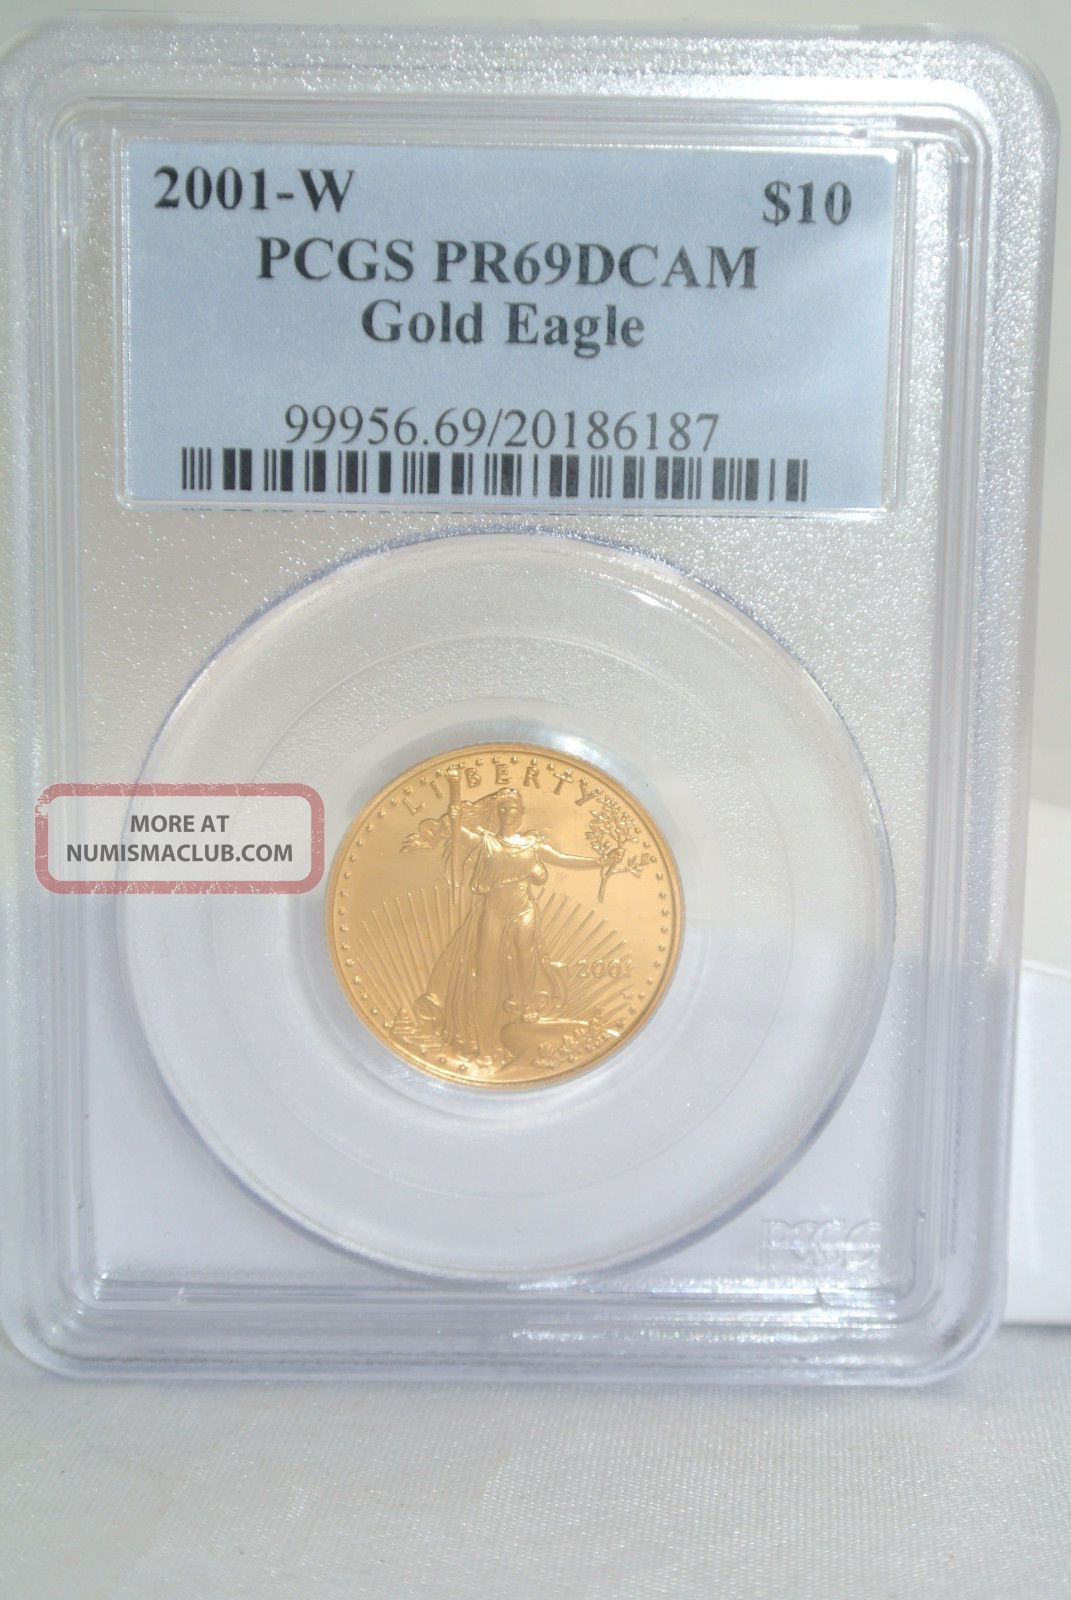 2001 Gold American Eagle 1/4 Oz Pcgs Pr69dcam Slabbed $10 Gold Coin.  9999 Gold photo